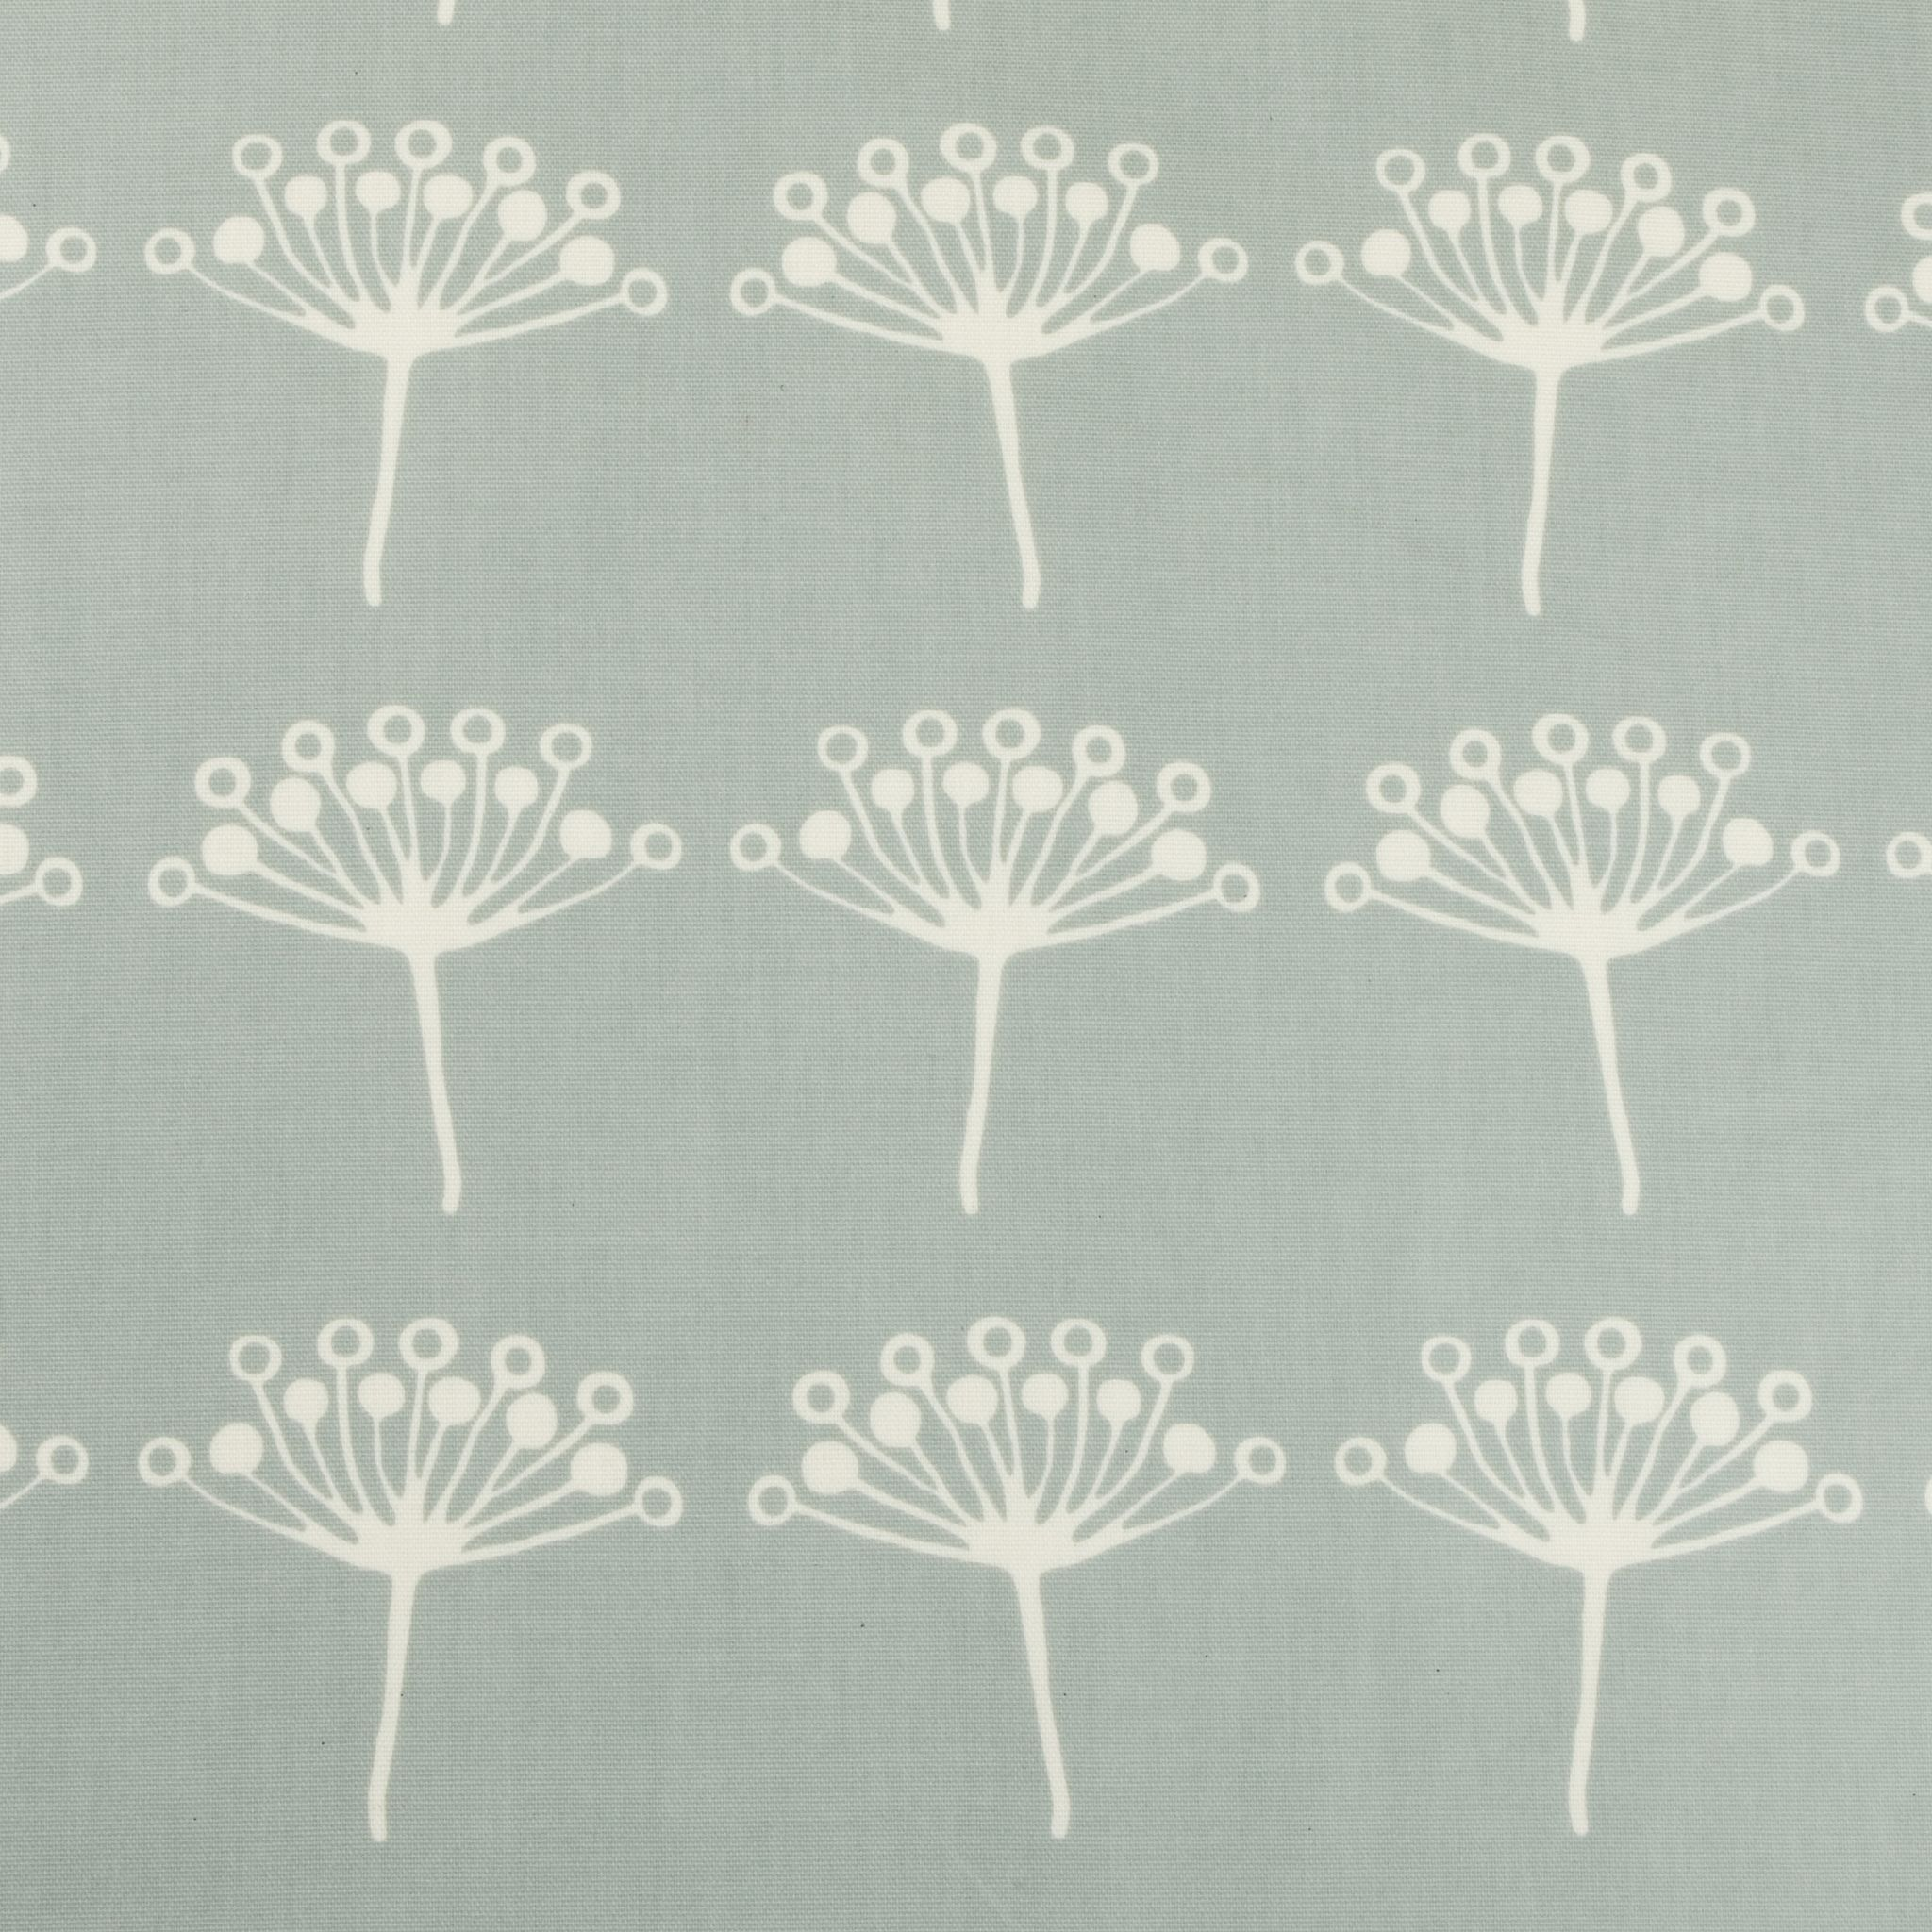 Duck Egg Seed Flower Oilcloth Tablecloth   Contemporary Oilcloth Fabric